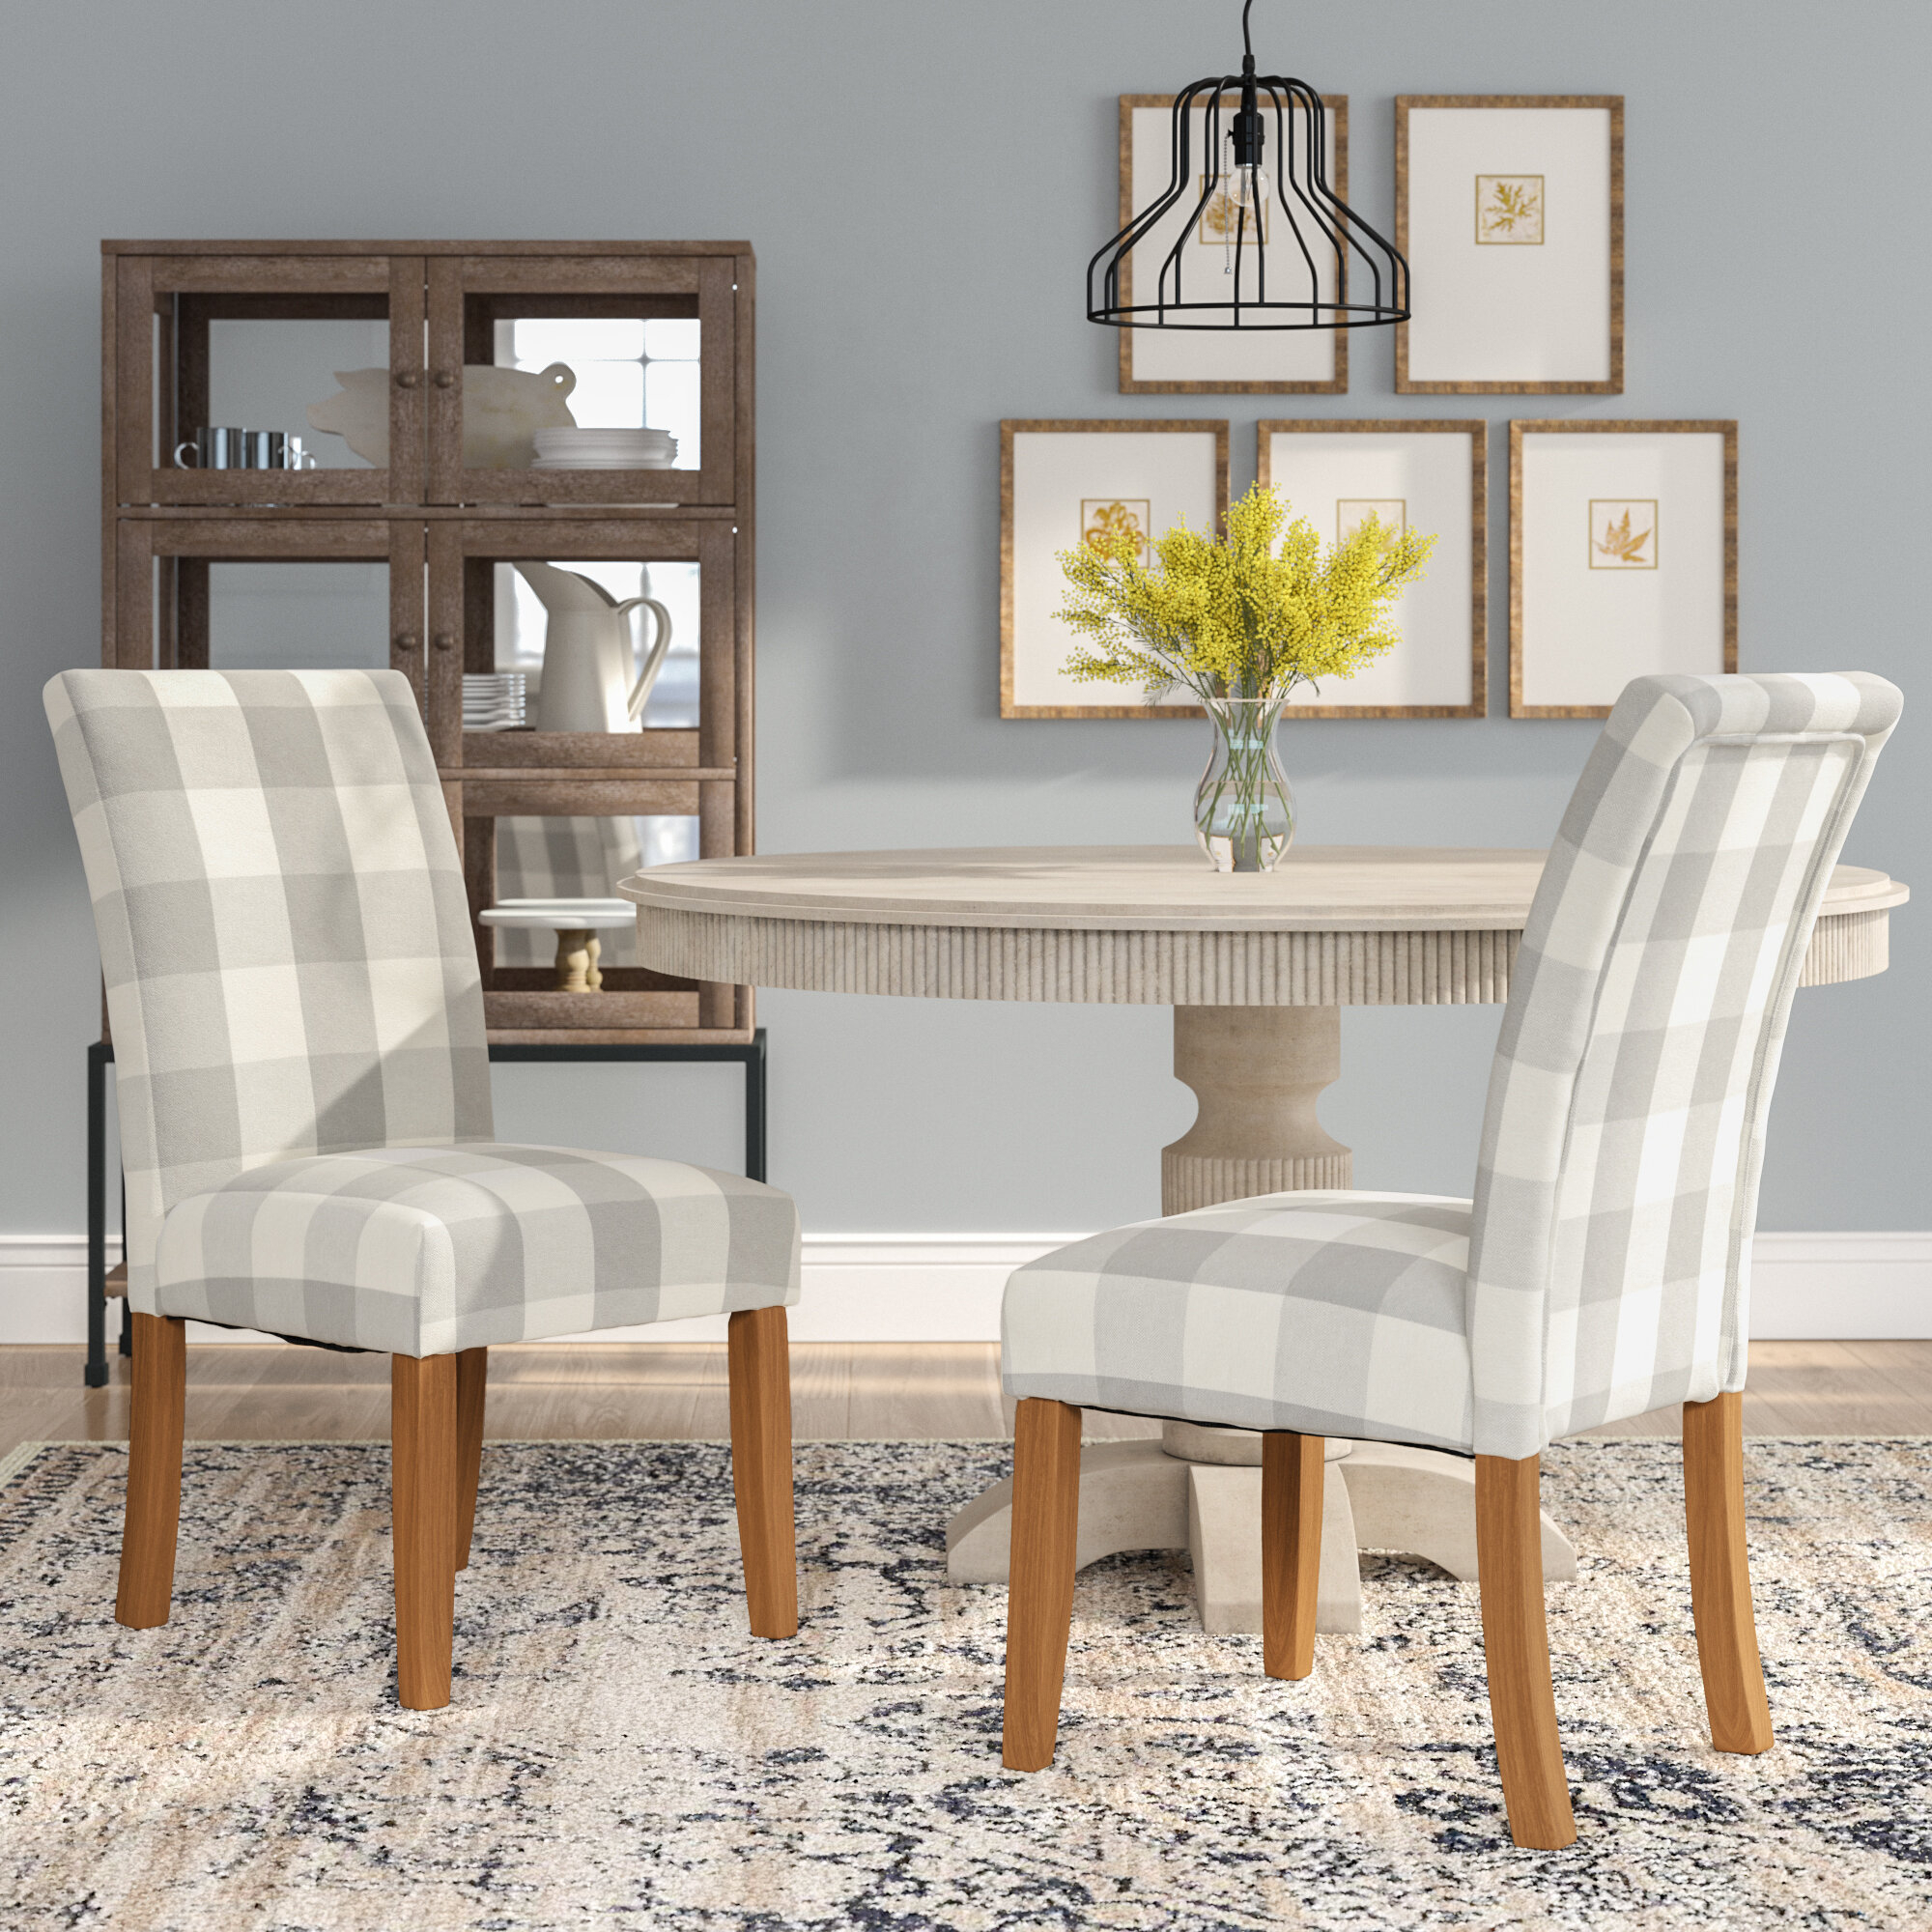 Coastal Parsons Accent Chairs You'Ll Love In 2021 | Wayfair Inside Aime Upholstered Parsons Chairs In Beige (View 6 of 15)